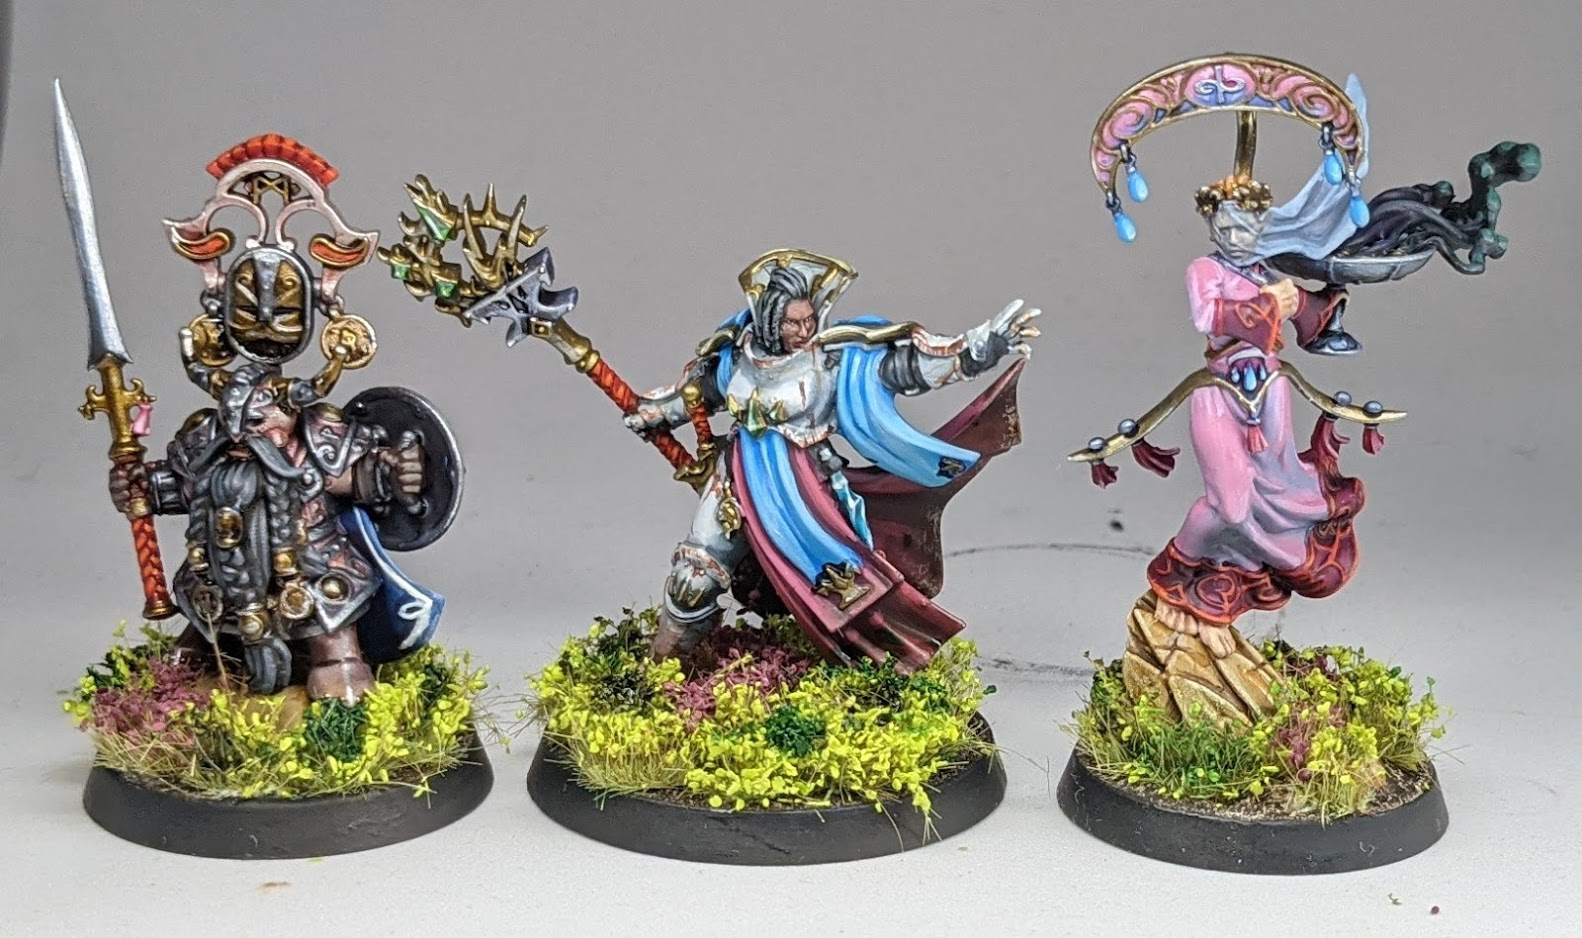 Three heroes painted in blues and pinks - a dwarf warrior, an armoured human mage, and an elf wizard with a face veil.